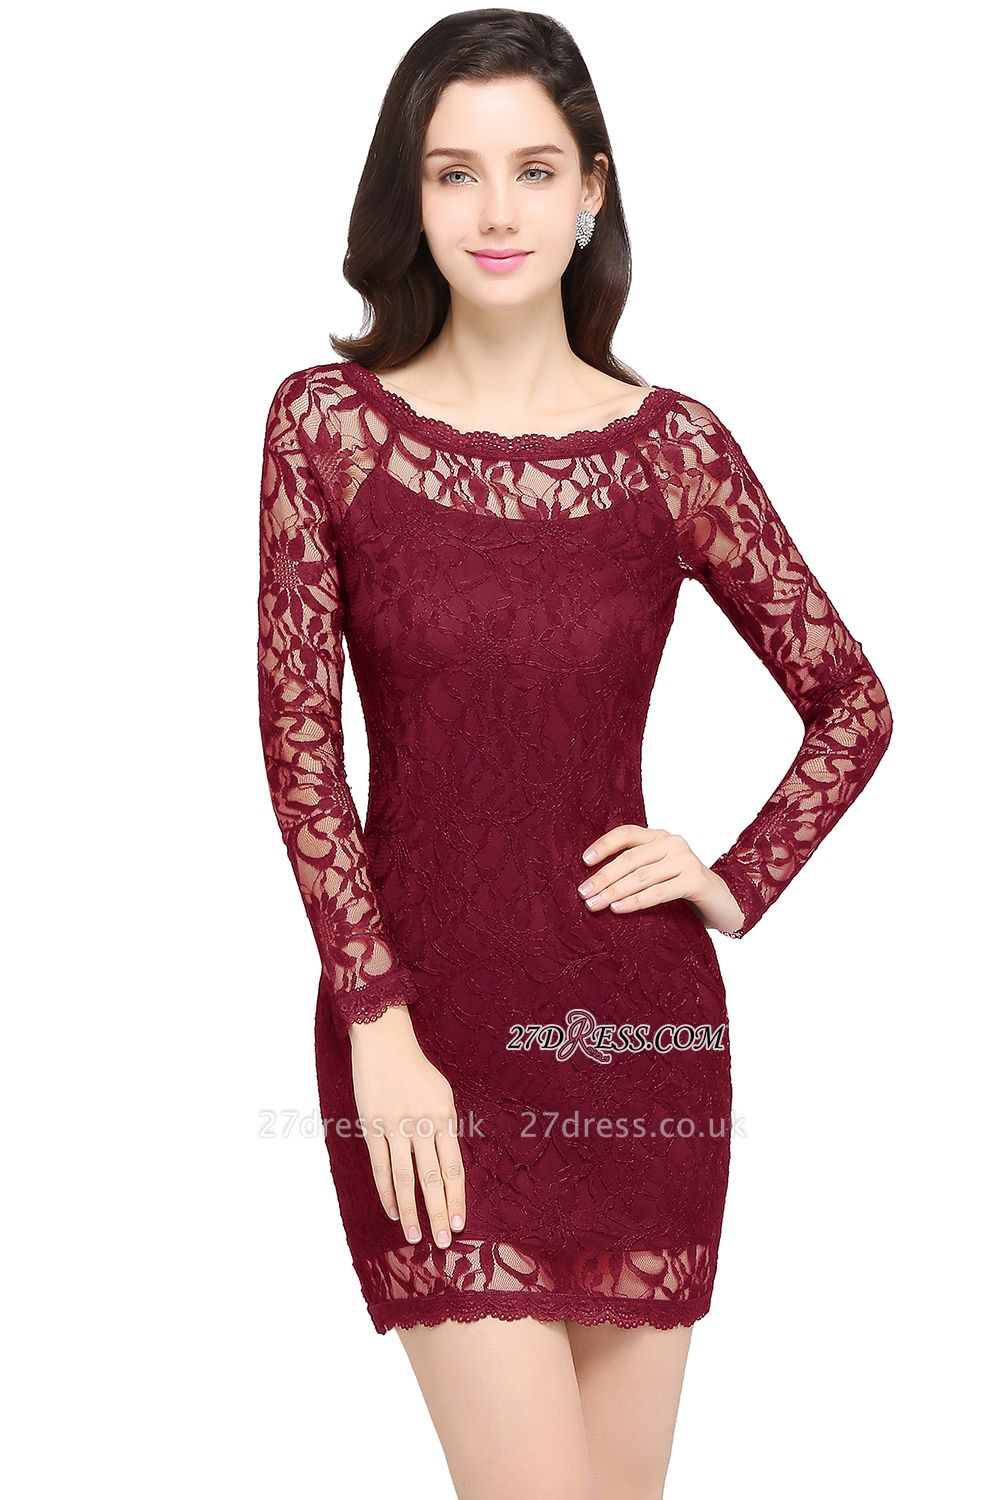 Sheath Long-Sleeves Lace Navy-Blue Sexy Cocktail Dress UK